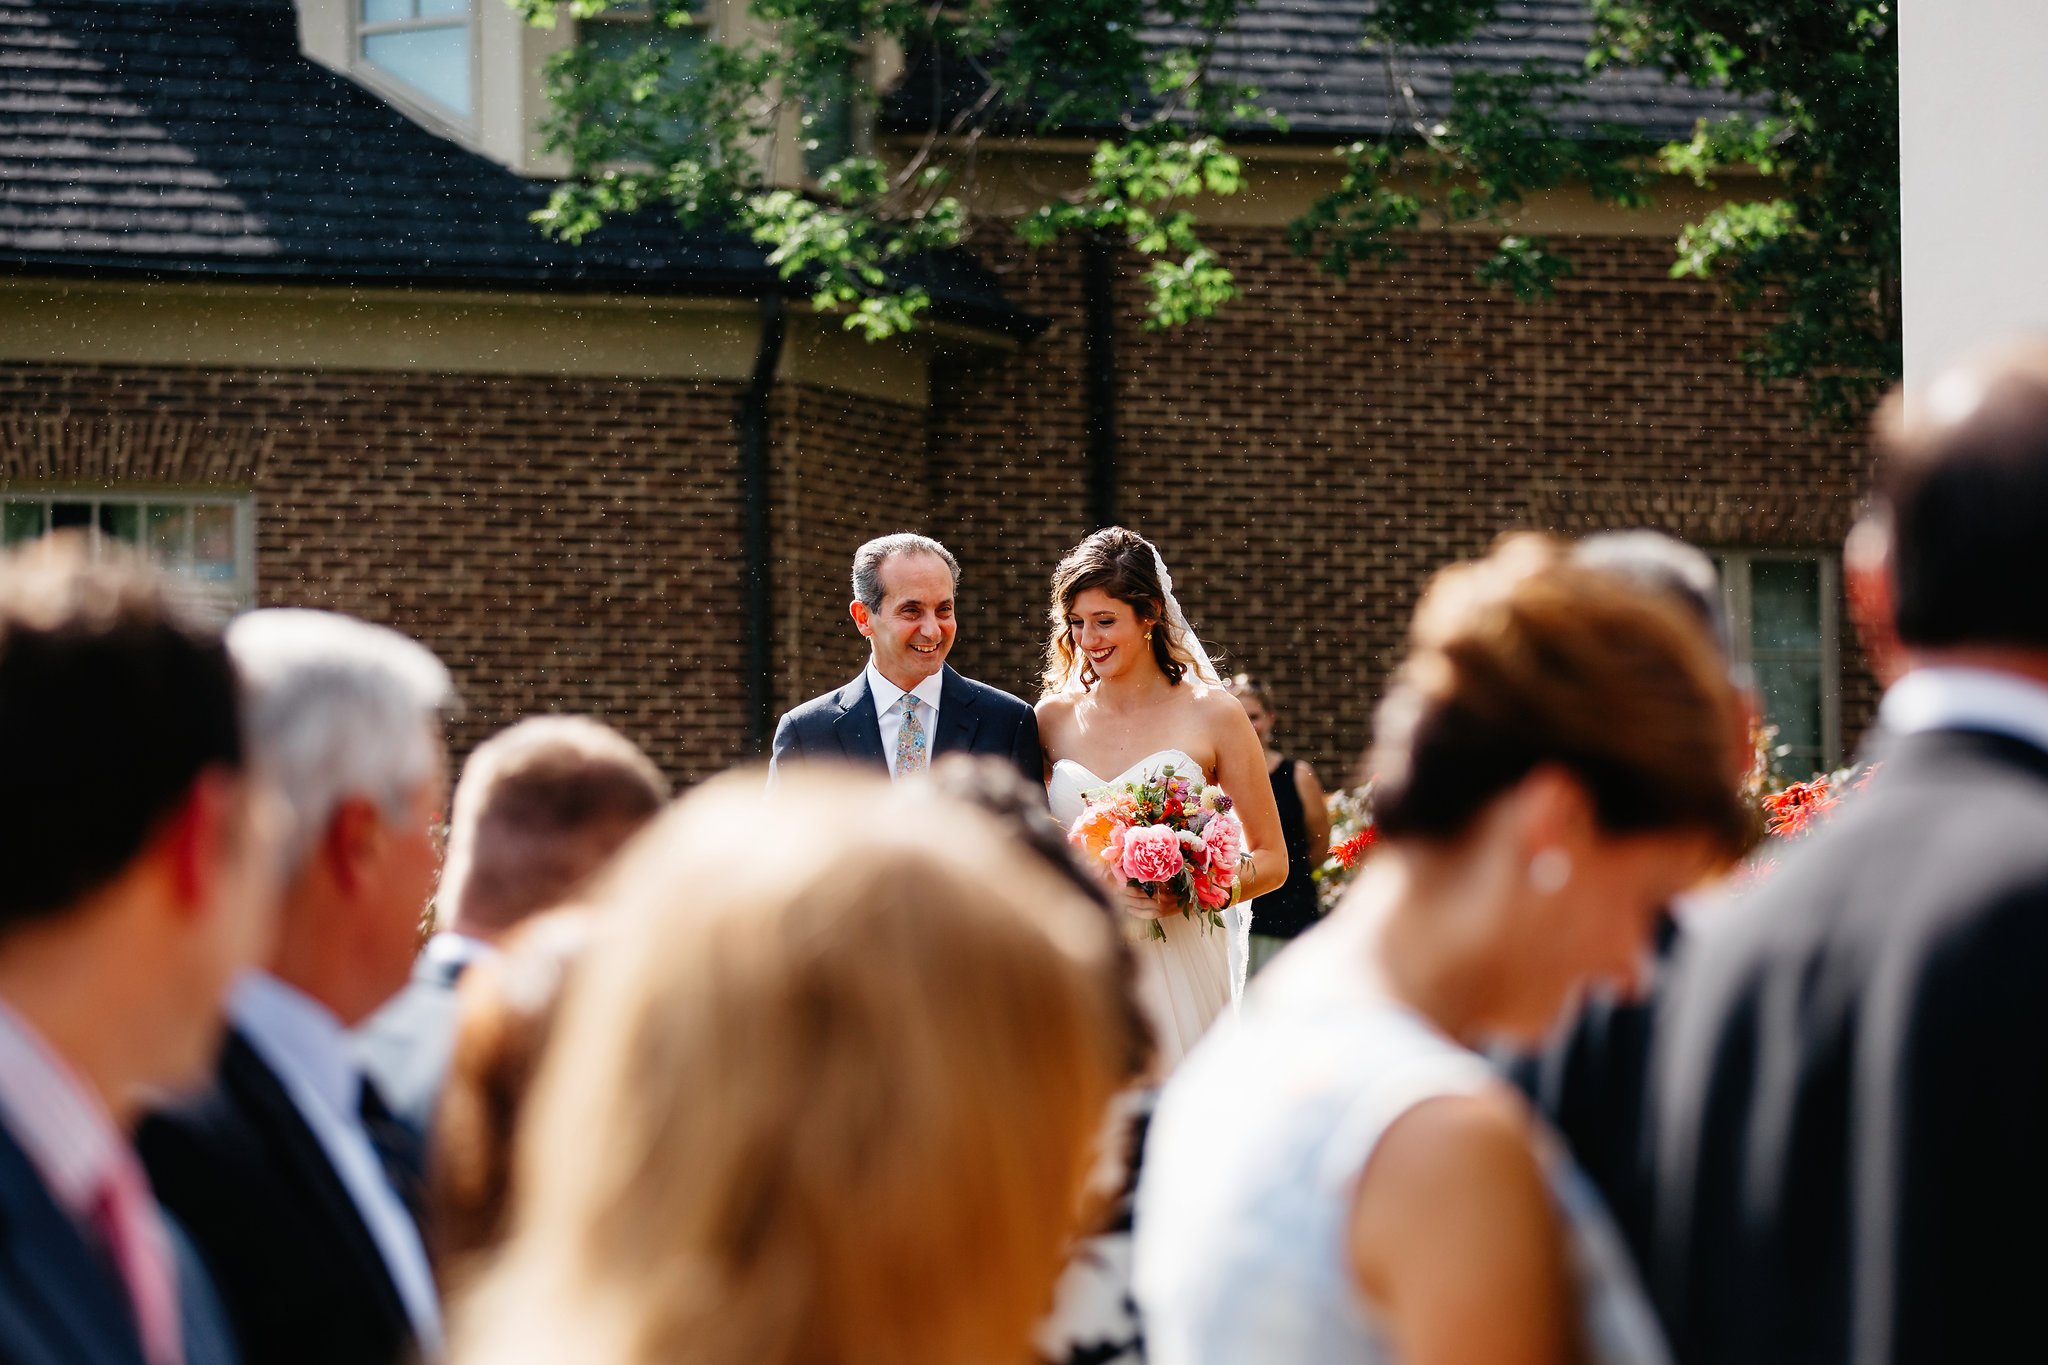 Maria&Dave2017-07-28at9.36.51AM104.jpg